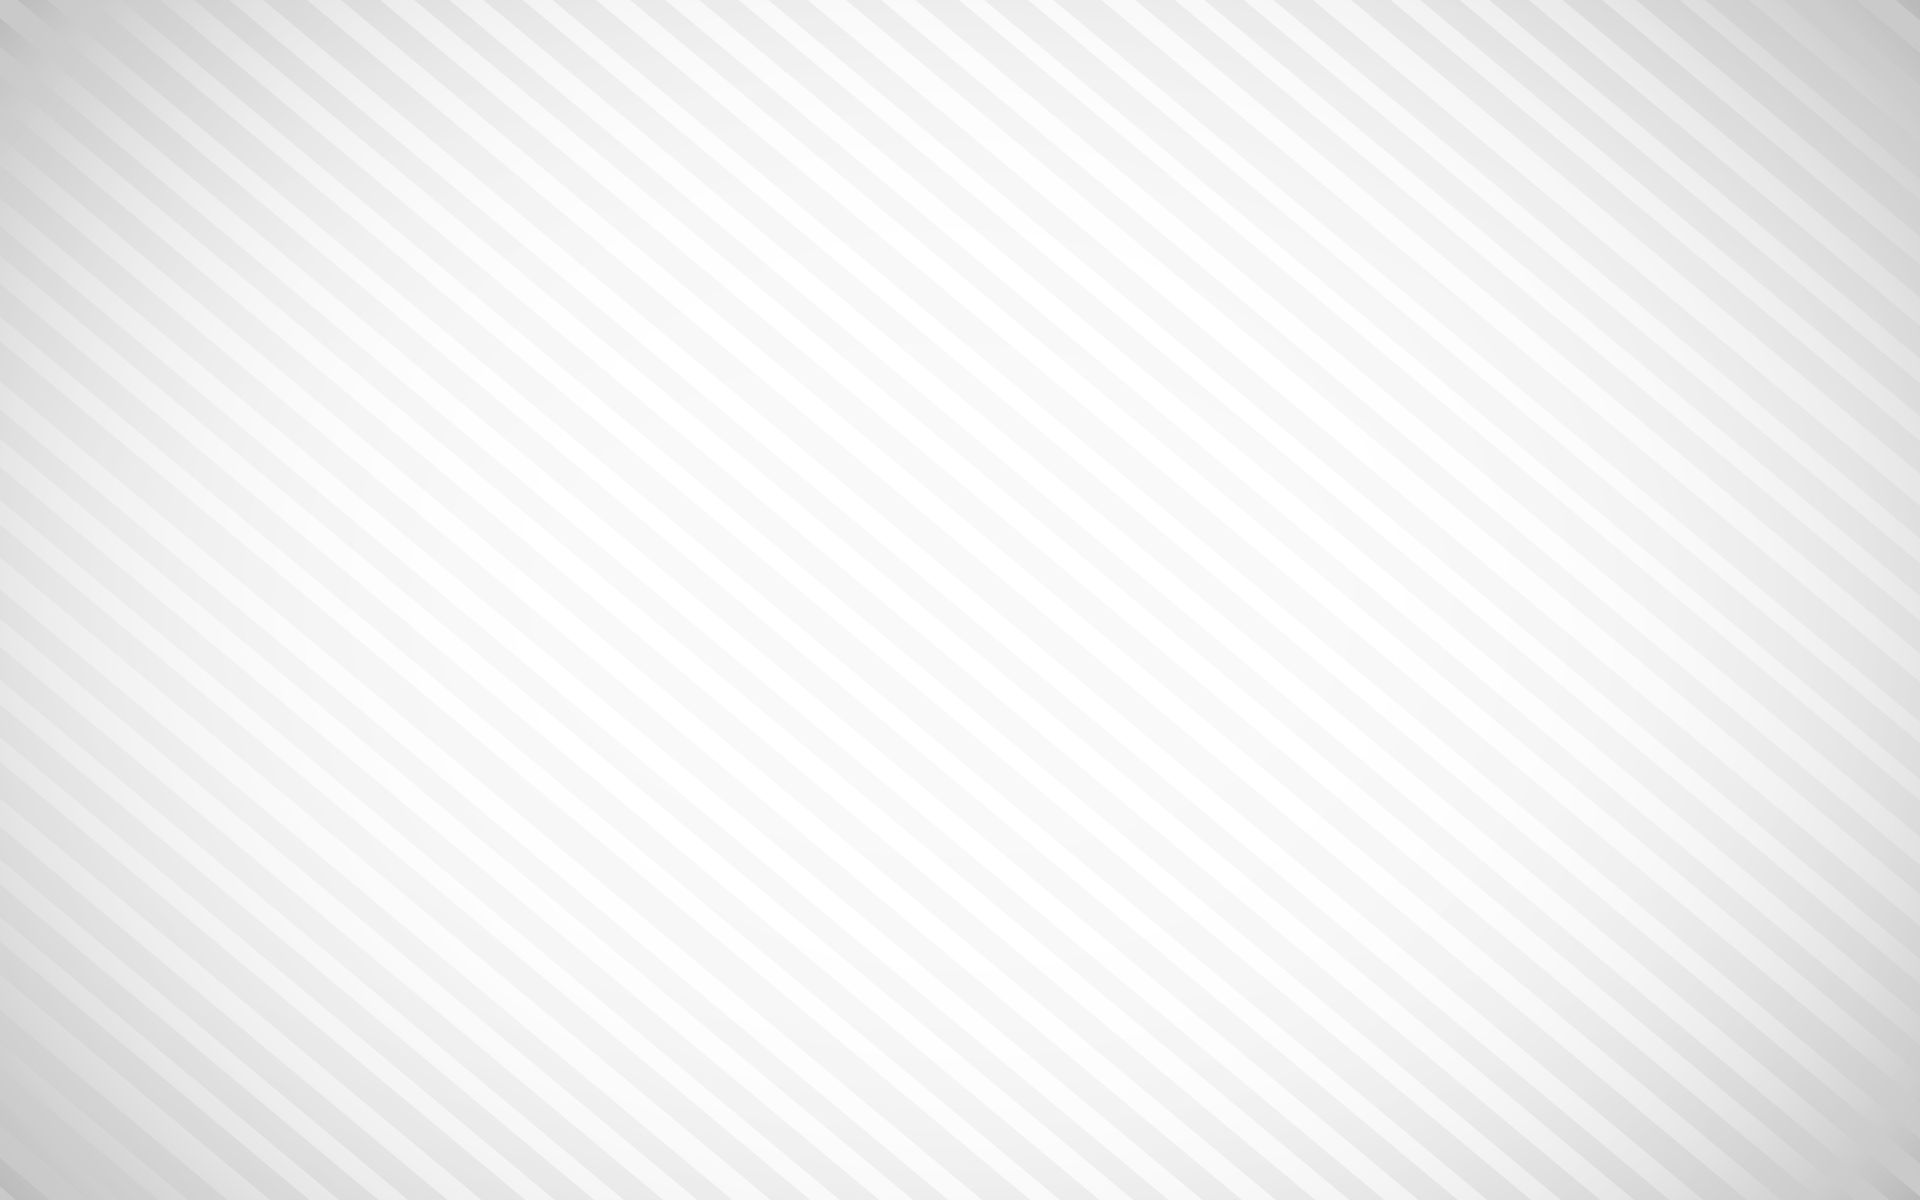 White Wallpaper 18 1920x1200